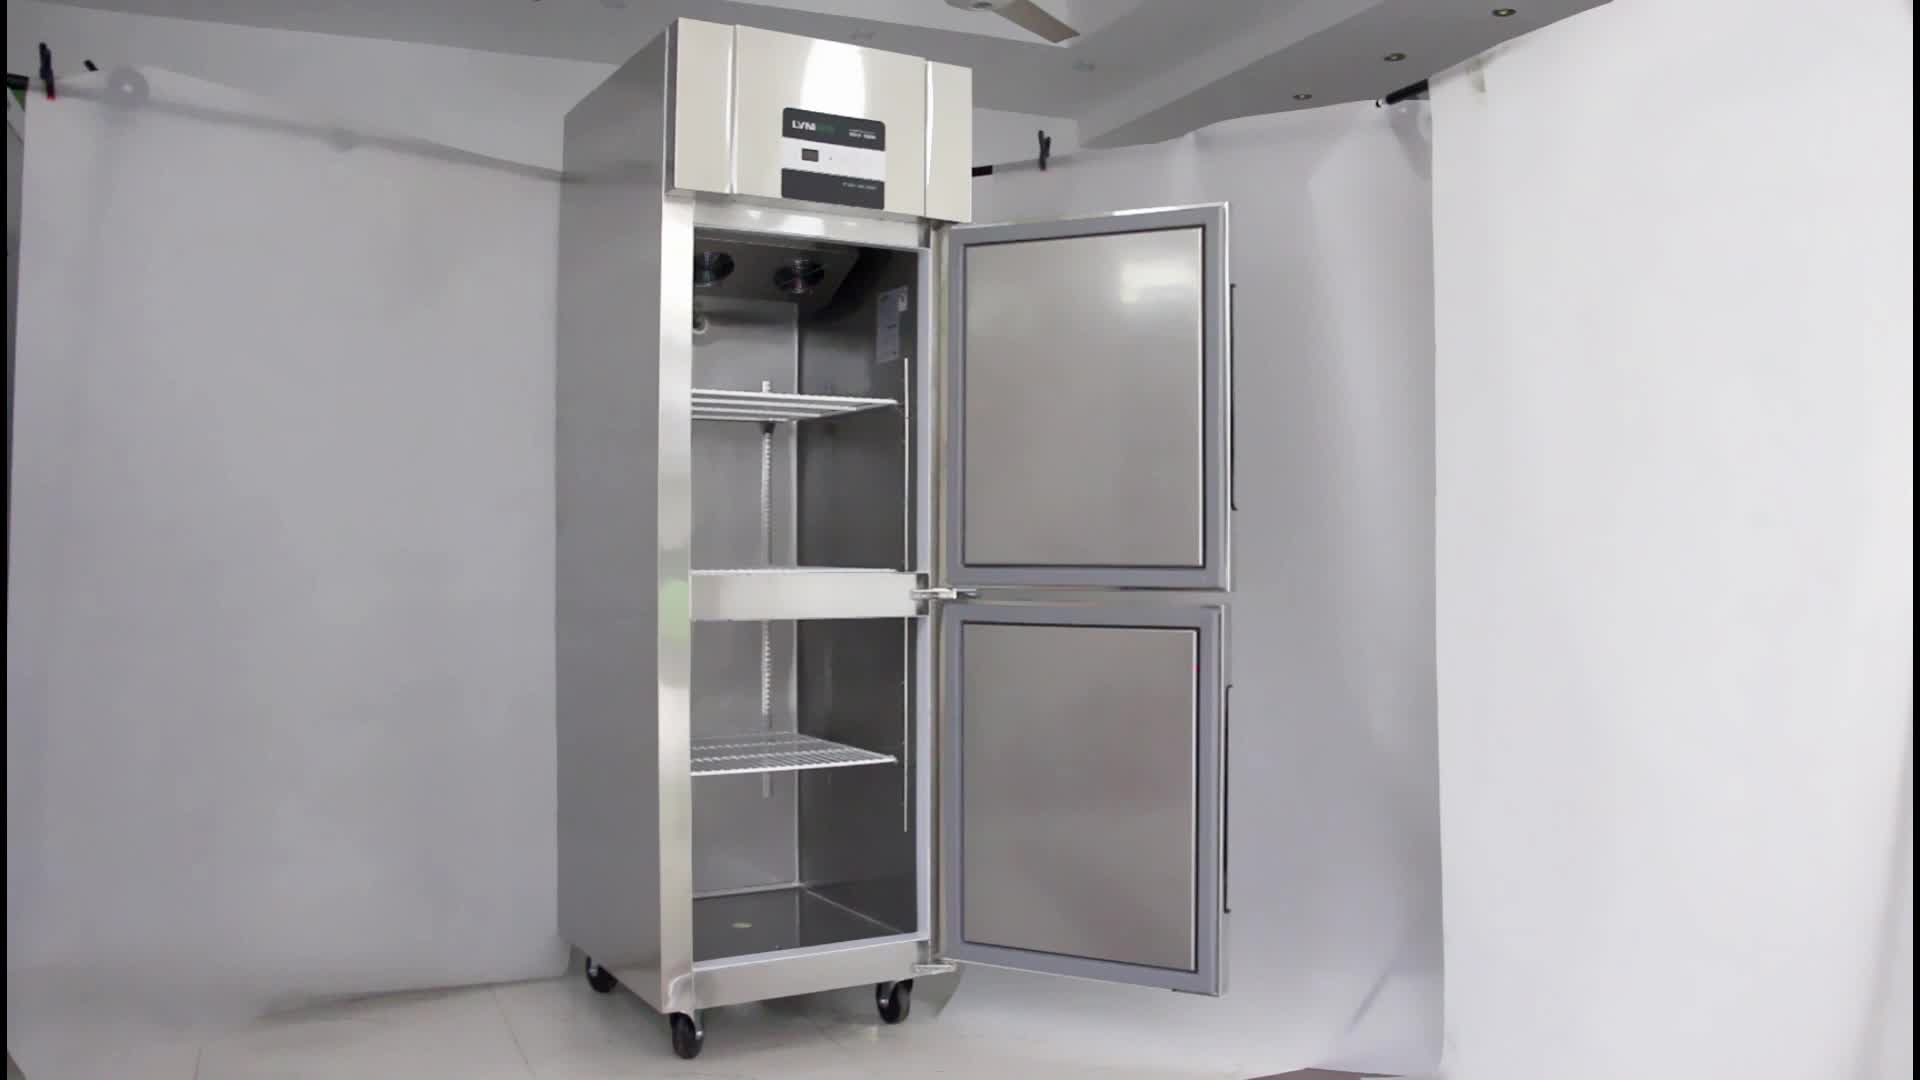 LVNI double door hotel restaurant kitchen upright industrial commercial freezer fridge refrigerator for sale